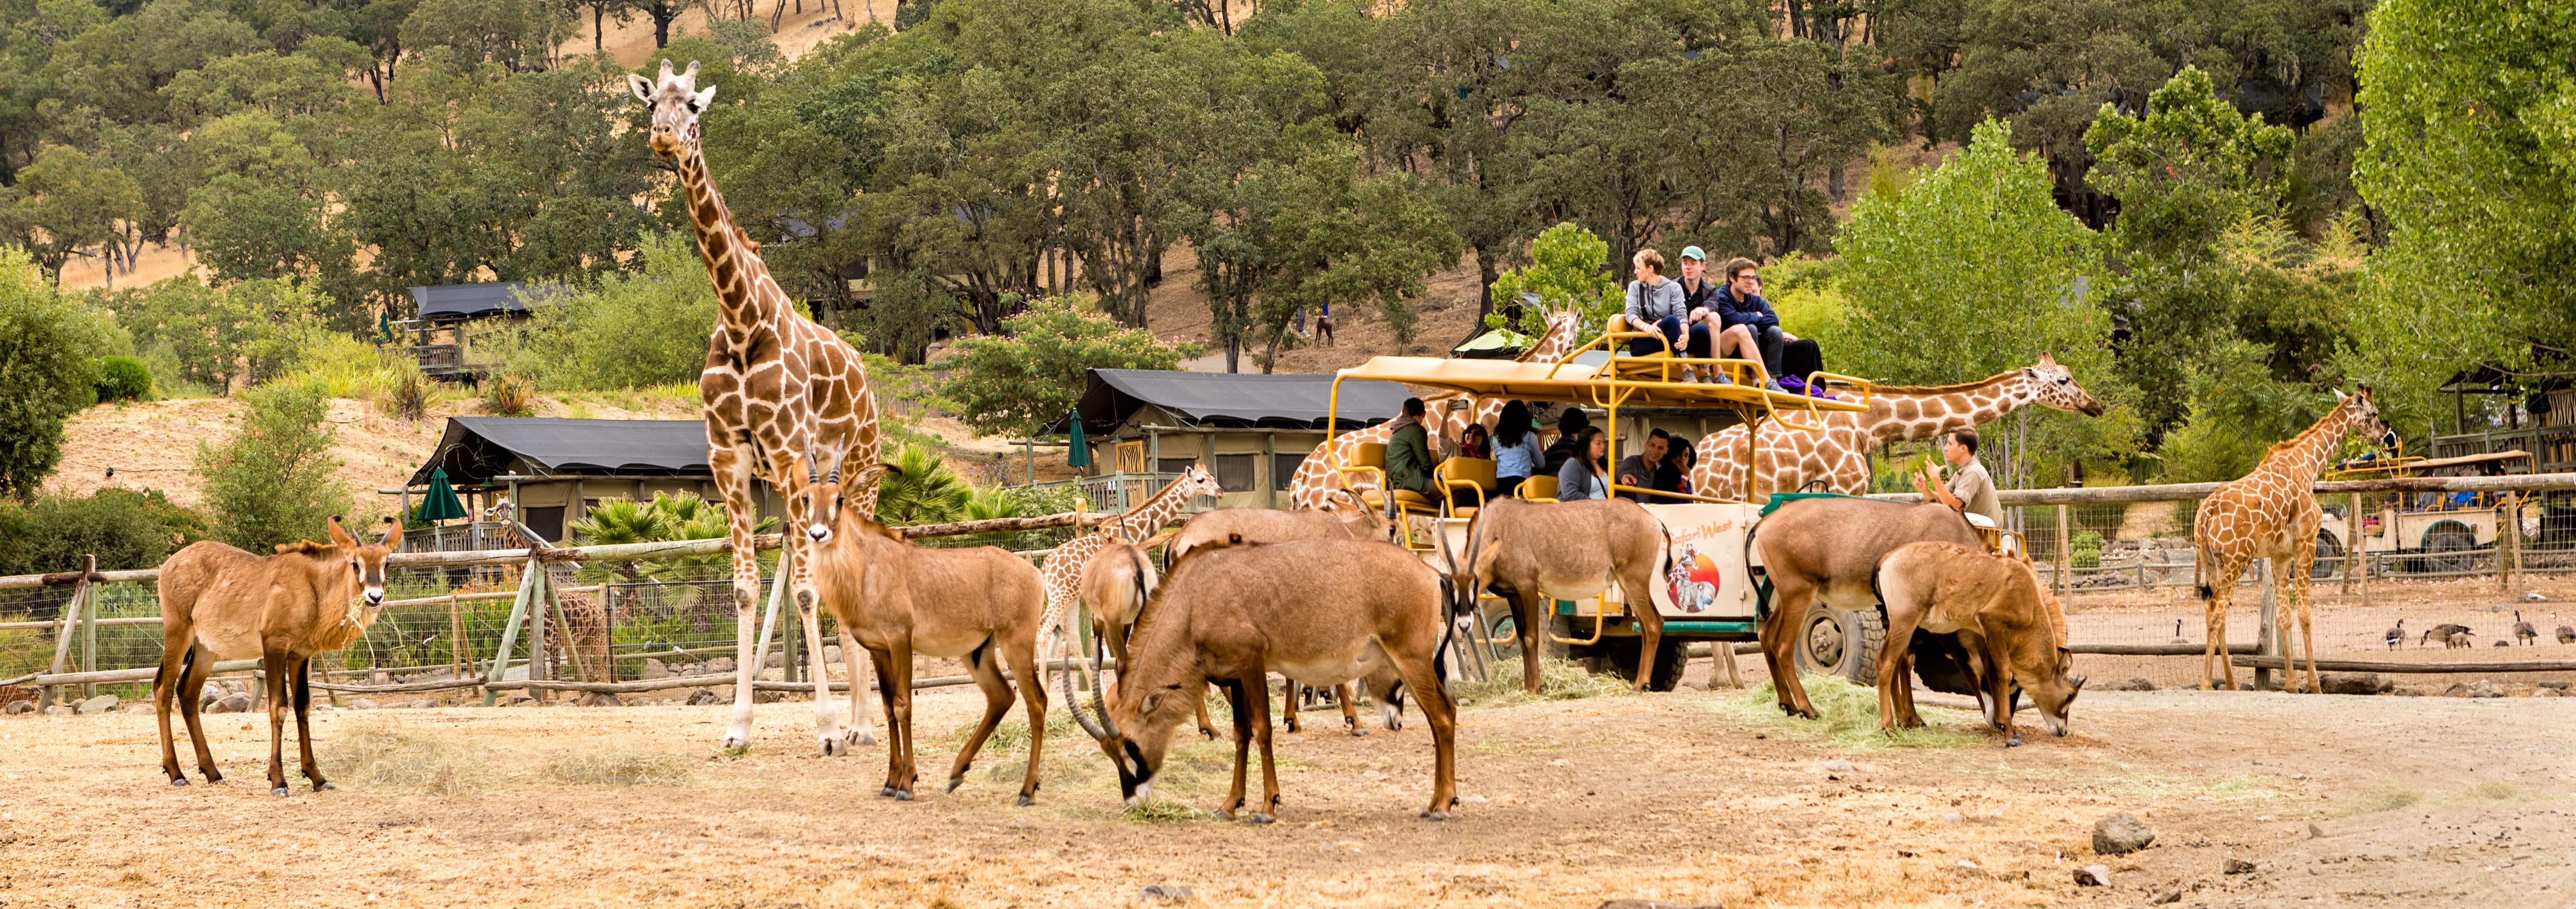 Safari West Wildlife Preserve and African Tent Camp